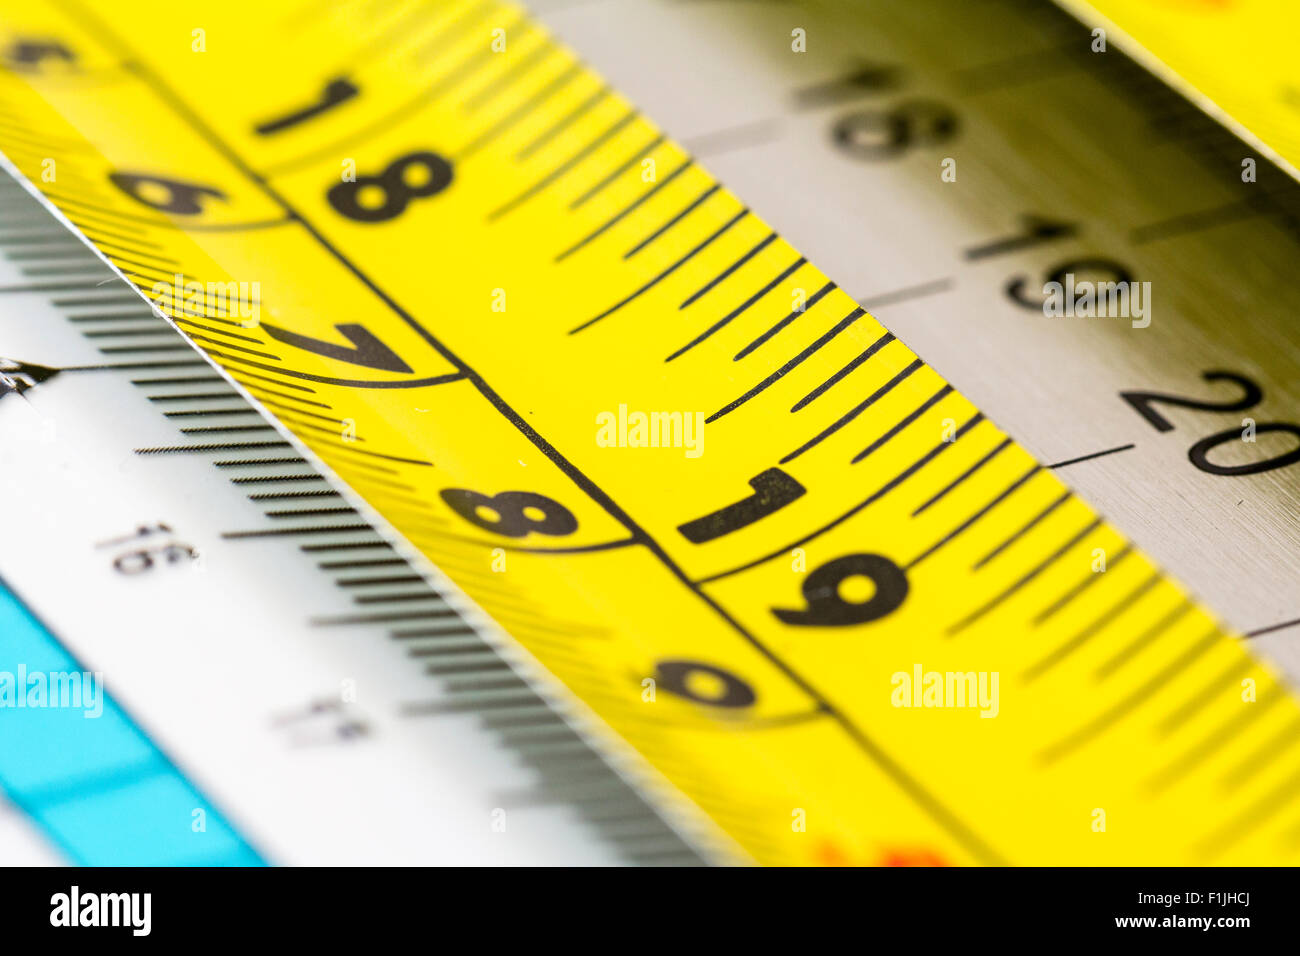 Rulers. Steel yellow roller tape ruler showing 18-19 inches on top of other rulers - Stock Image